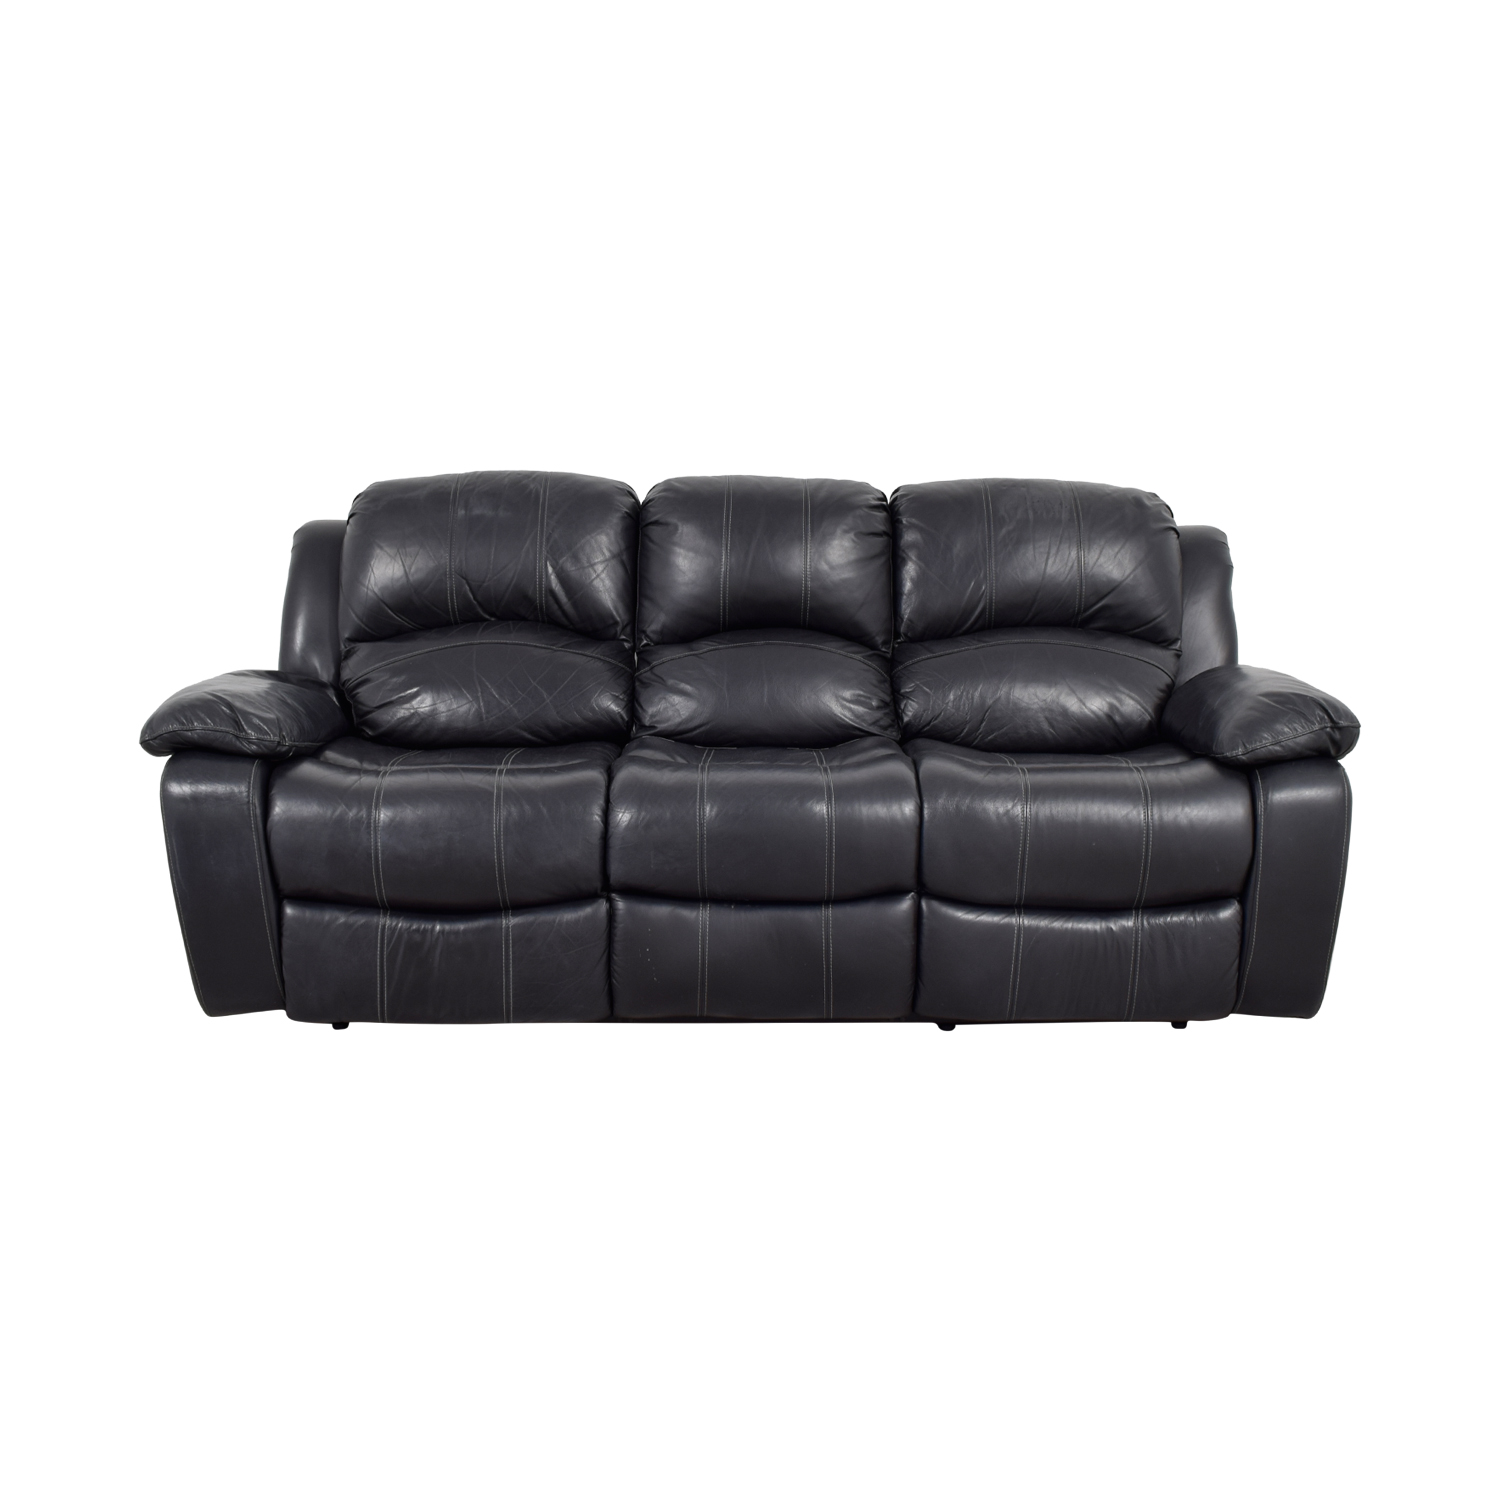 Leather Sofa Price: Black Leather Reclining Sofa / Sofas